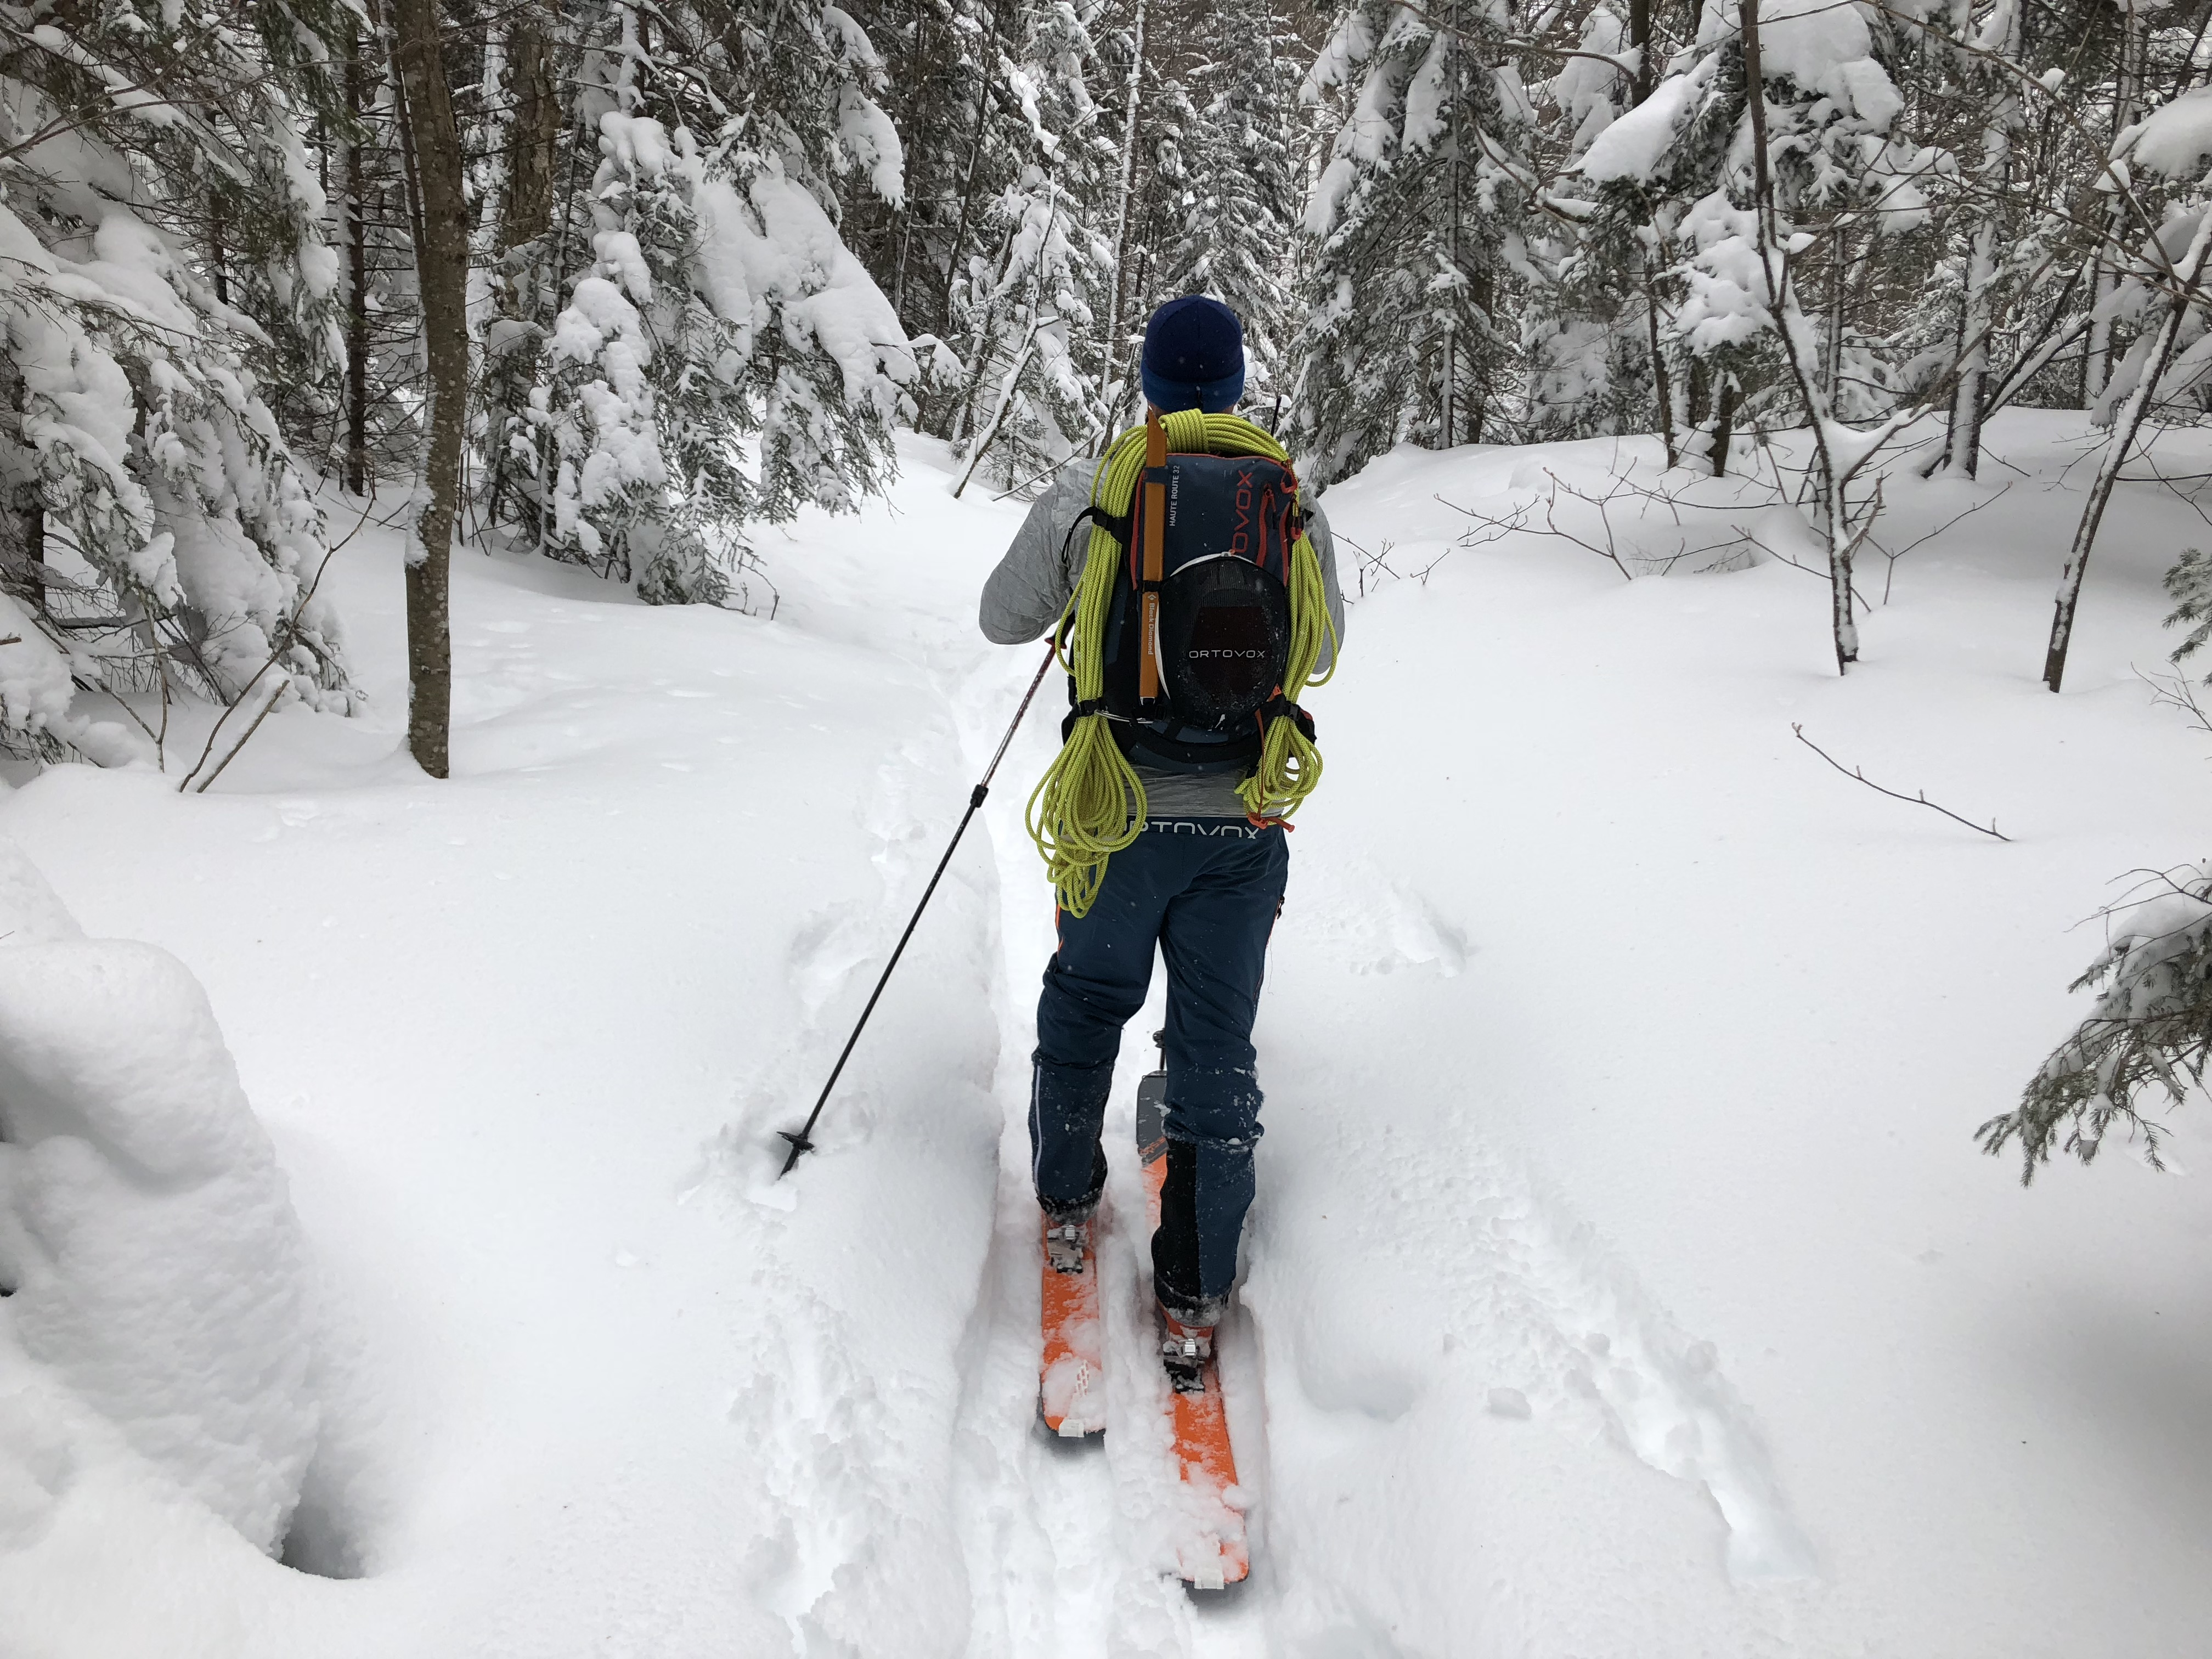 Skiing the Flume, Crawford Notch